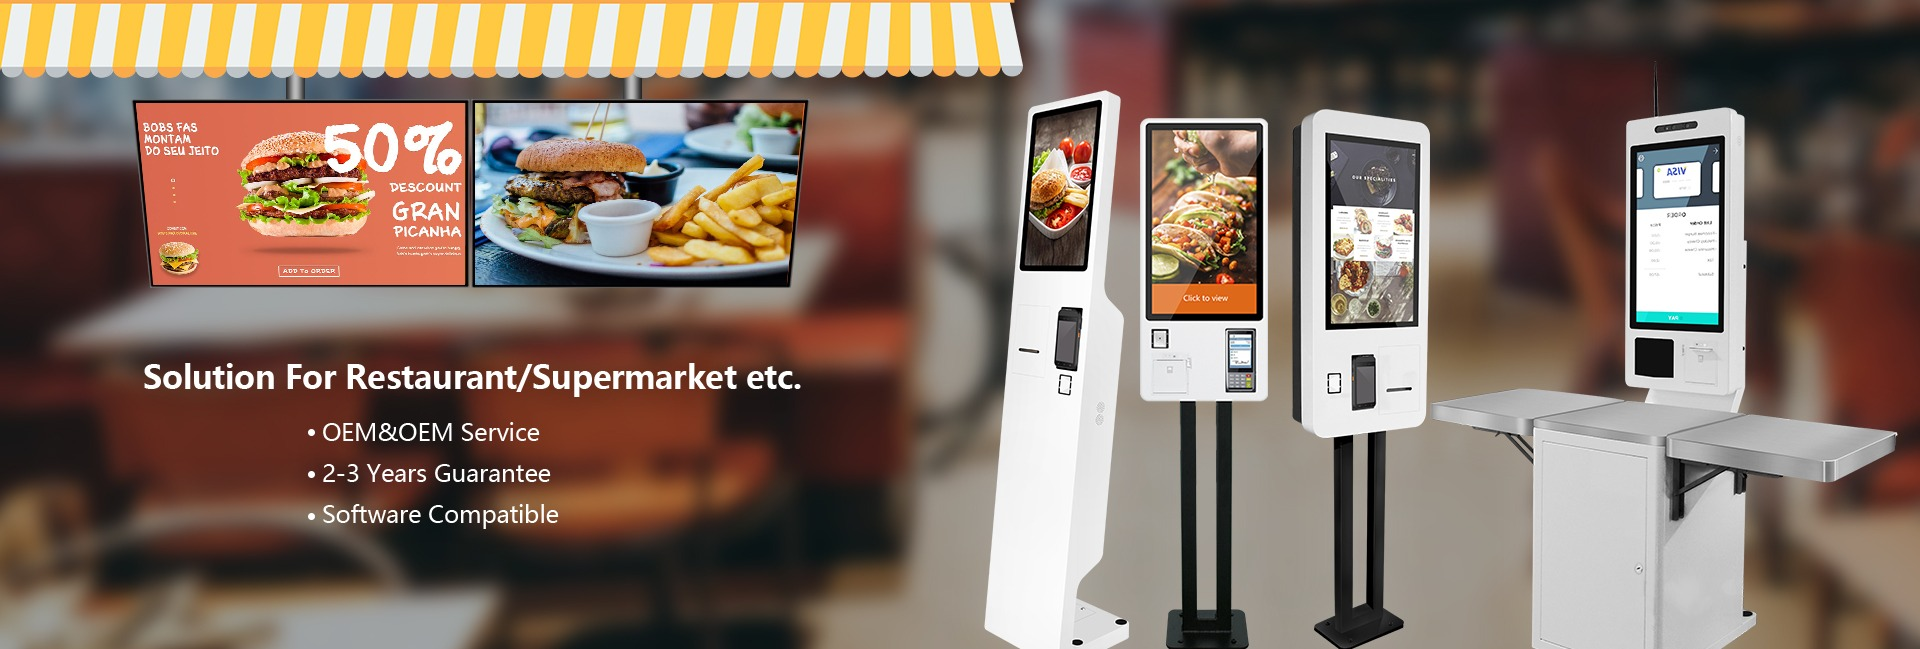 epos hospitality Digital Screens and self order kiosk